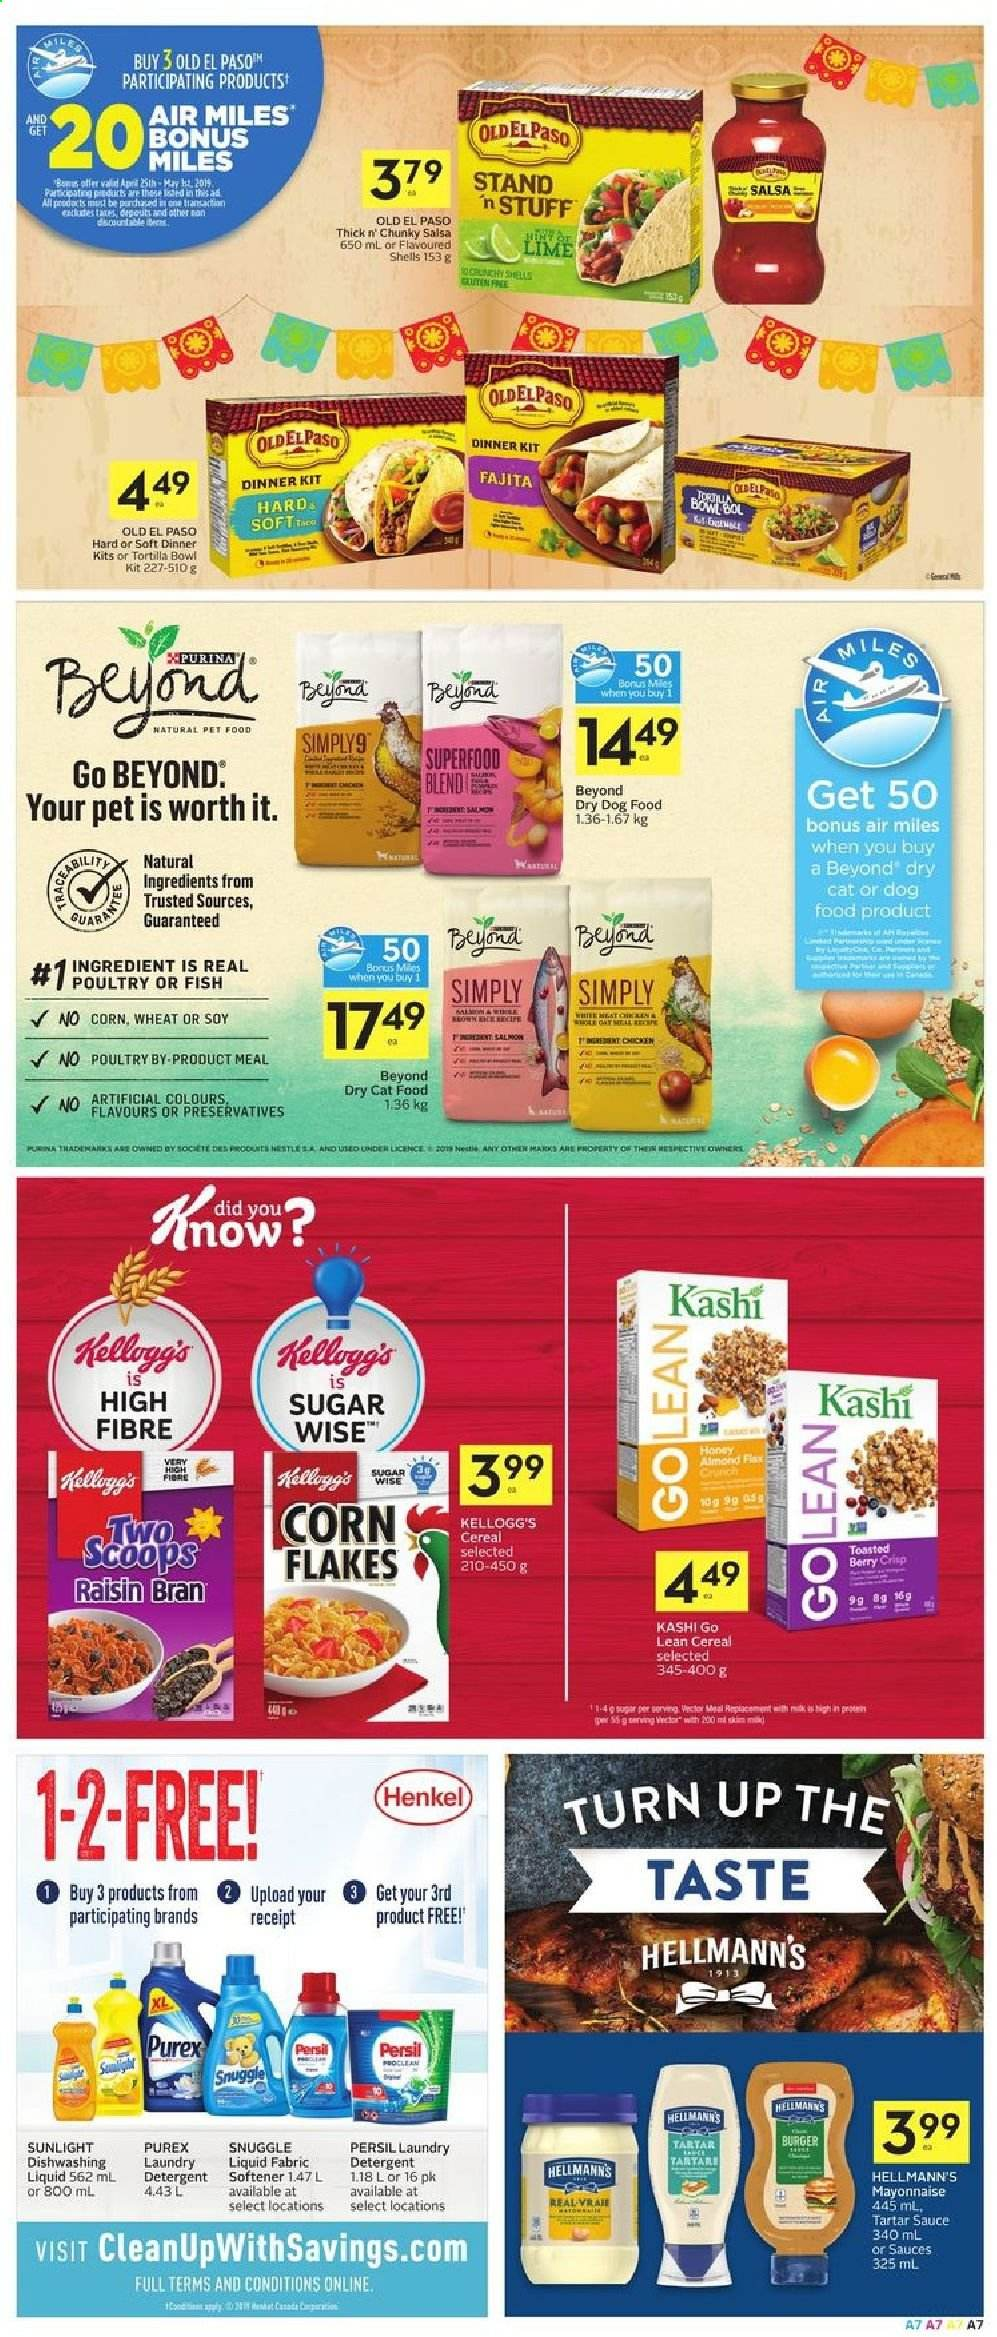 Foodland Flyer  - April 25, 2019 - May 01, 2019. Page 7.